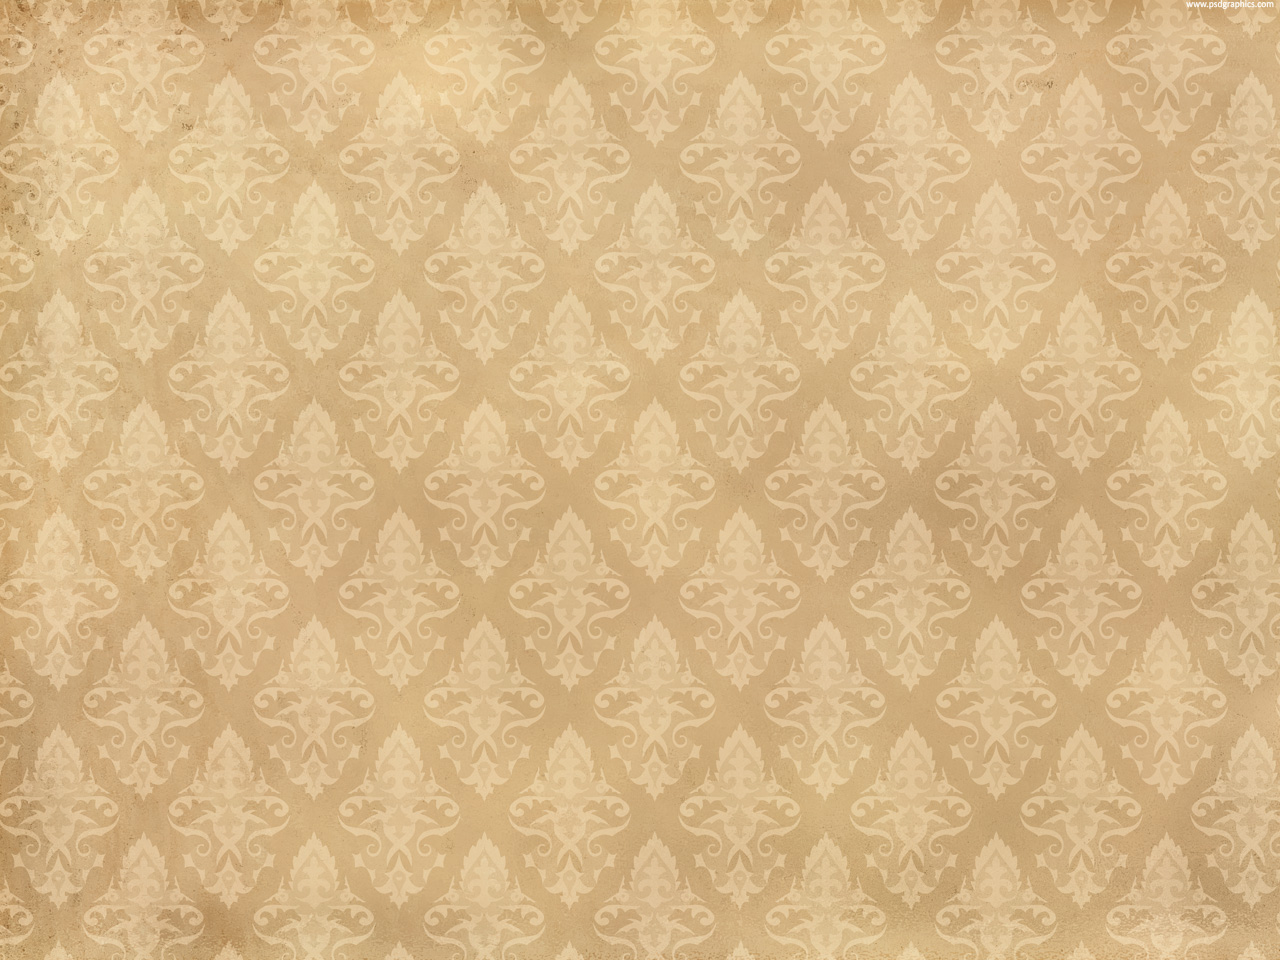 Brown vintage wallpaper PSDGraphics 1280x960